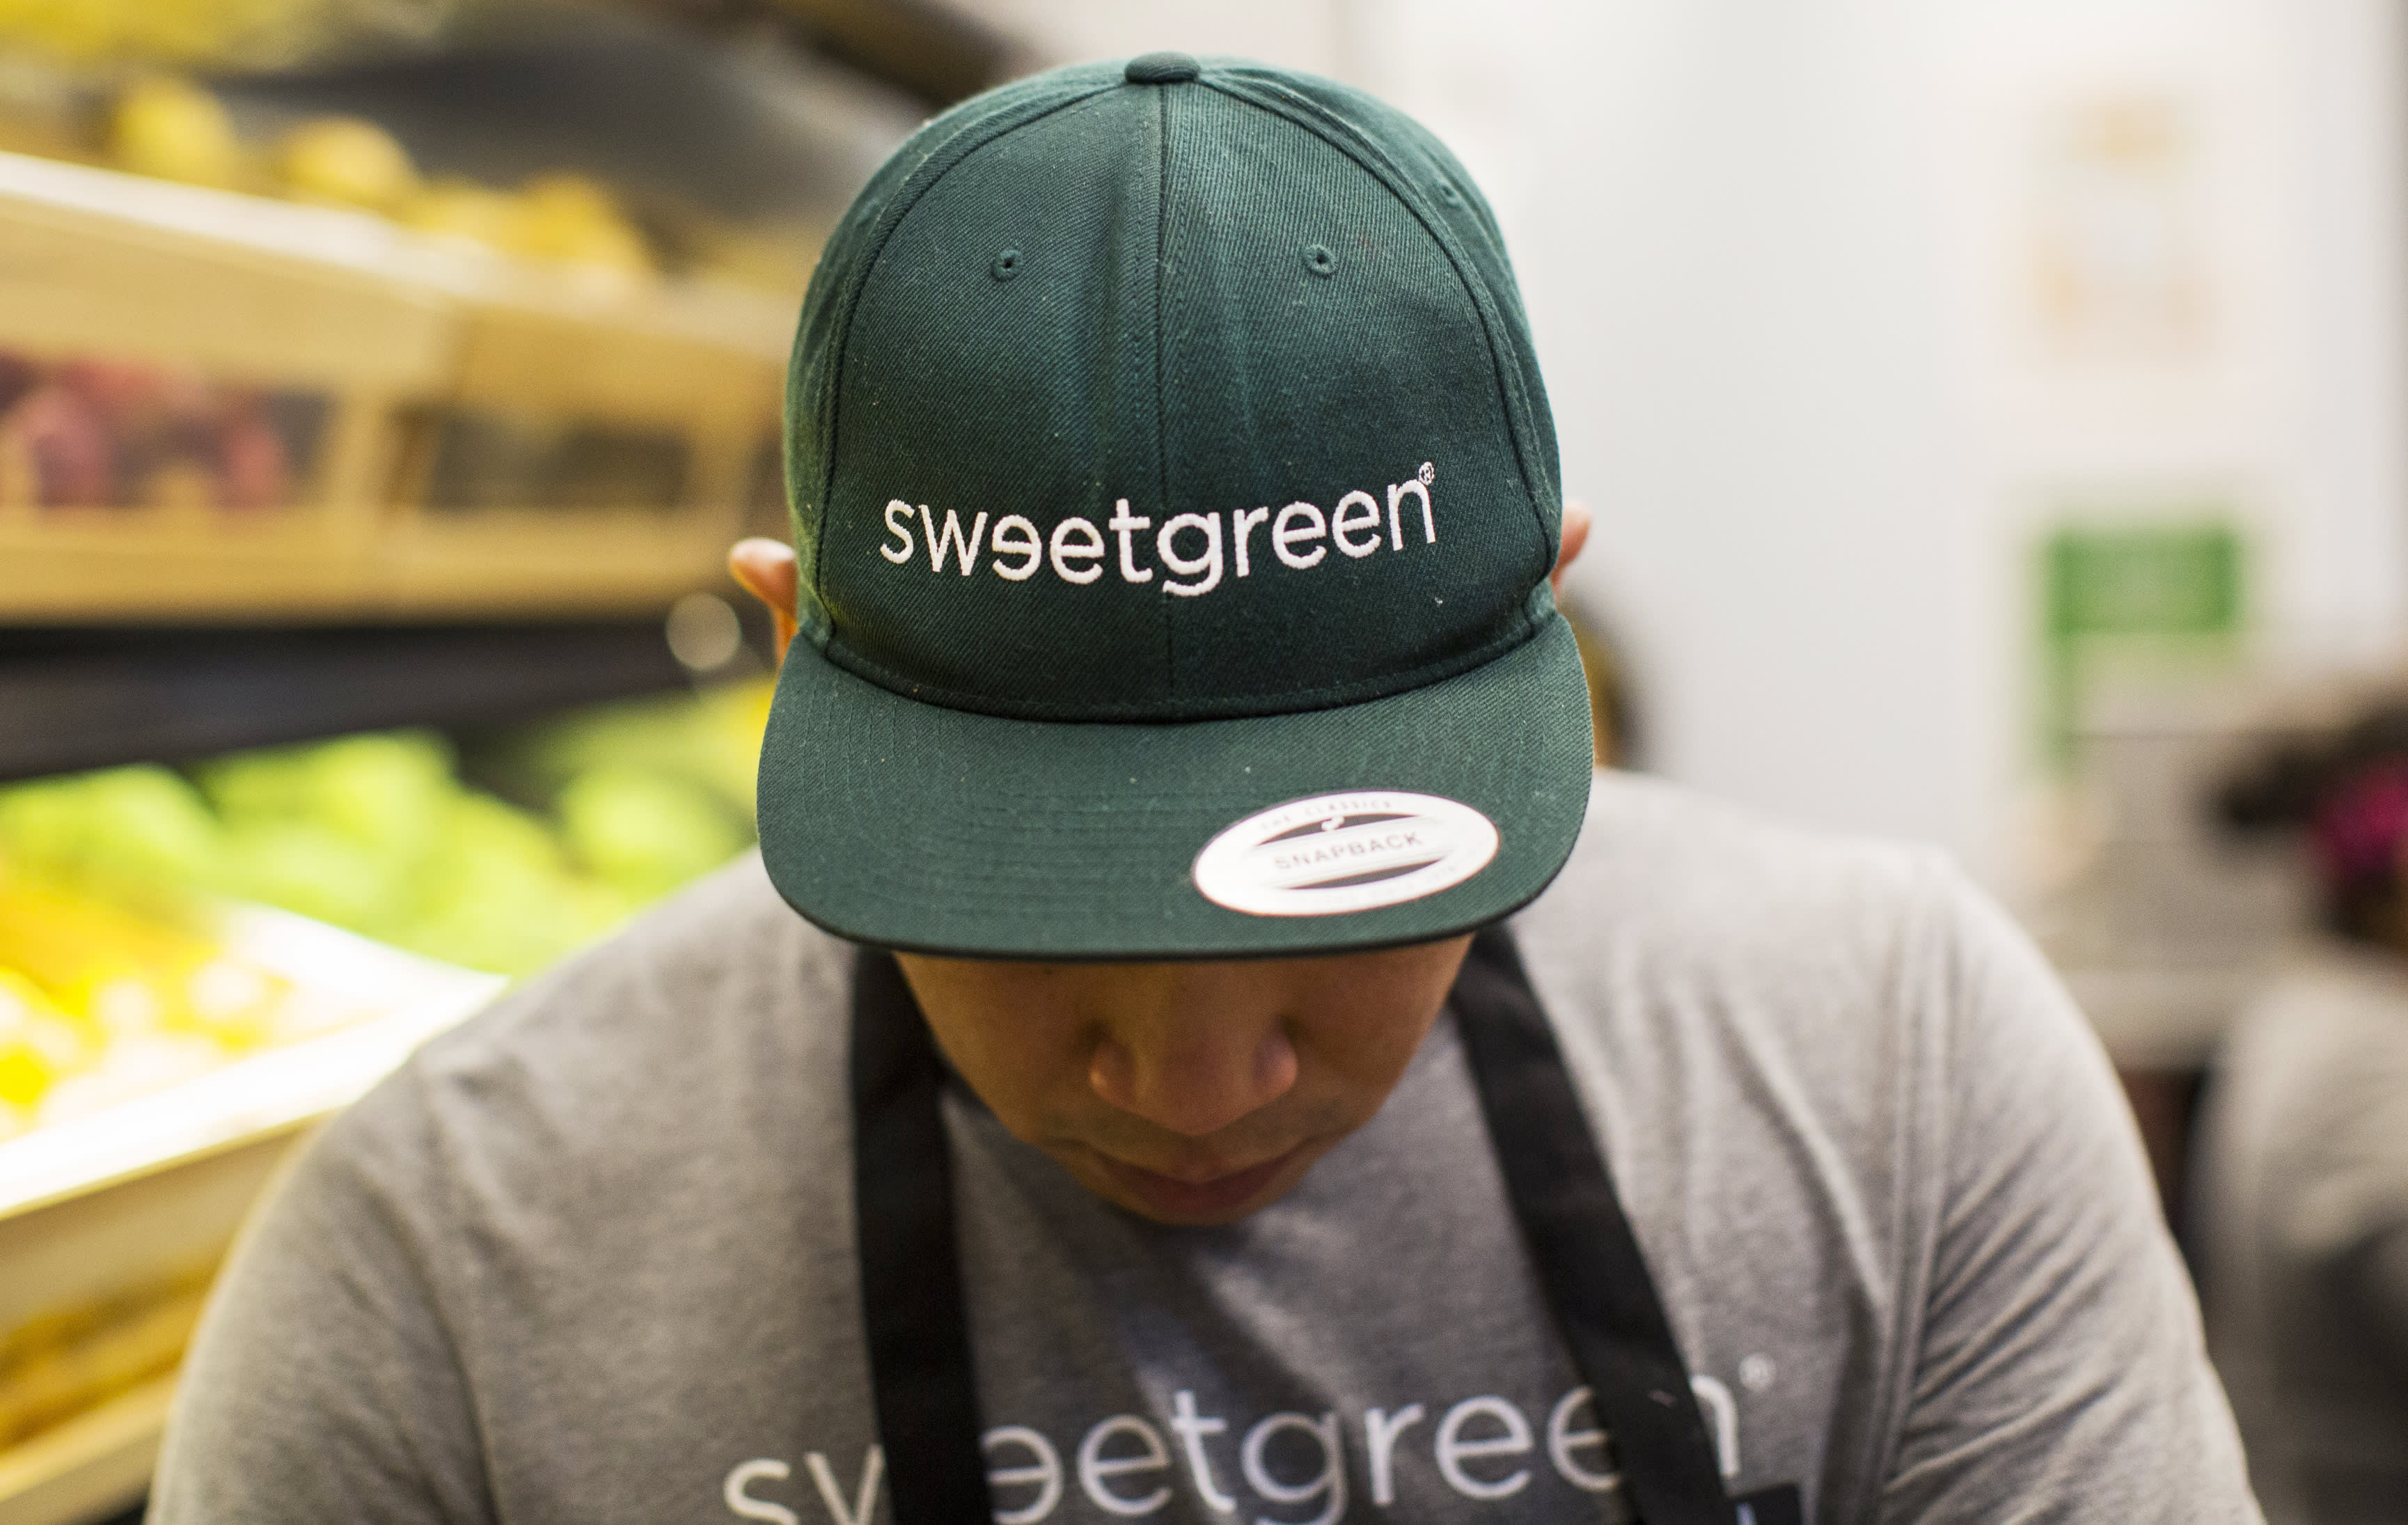 Salad chain Sweetgreen reportedly files for initial public offering